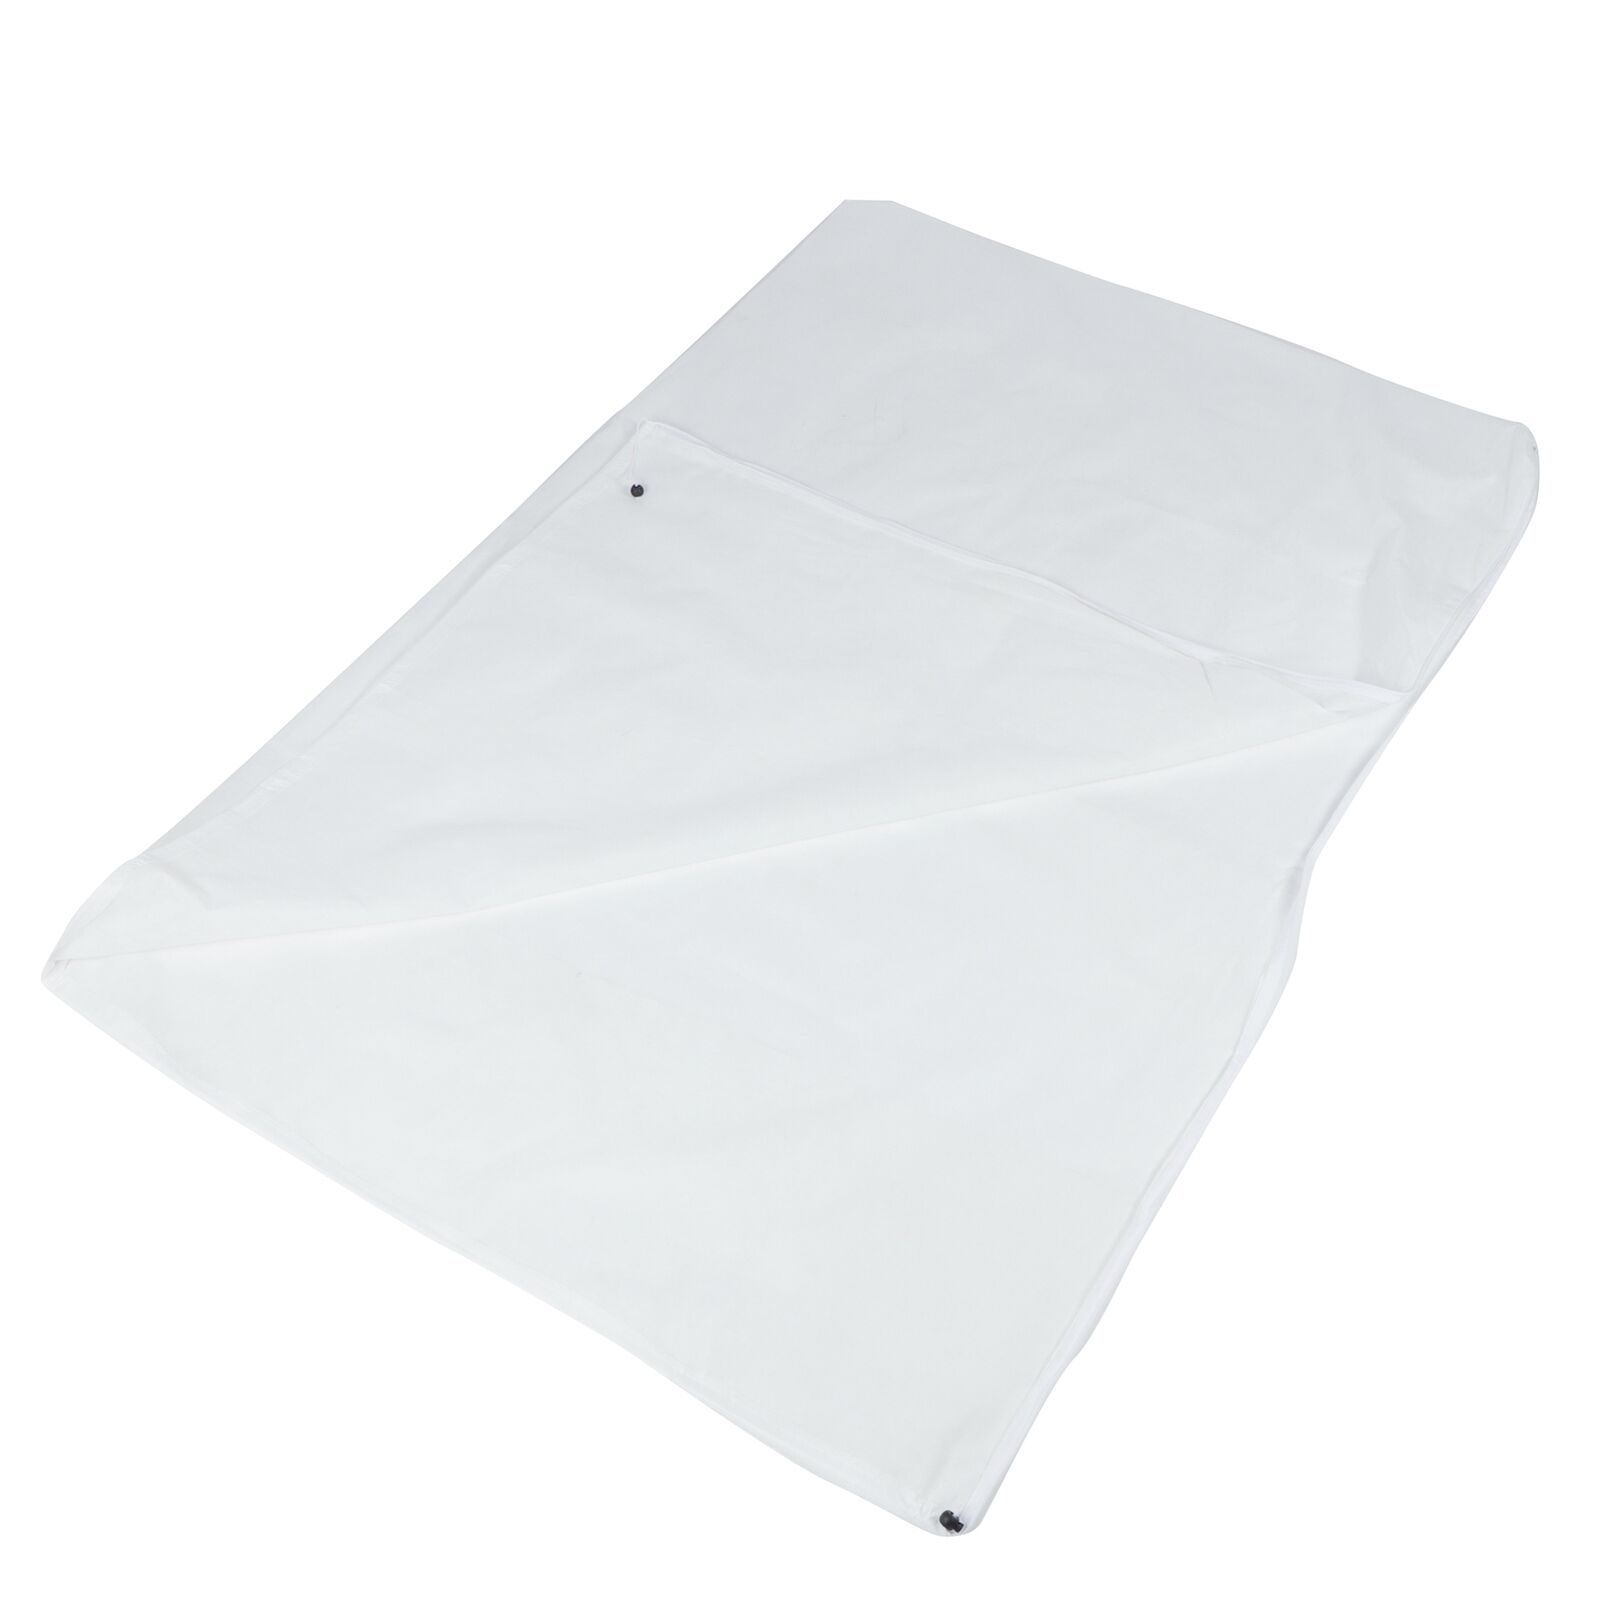 1.2x1.8m Outdoor Garden Plant Covers Freeze Protection For Cold Household